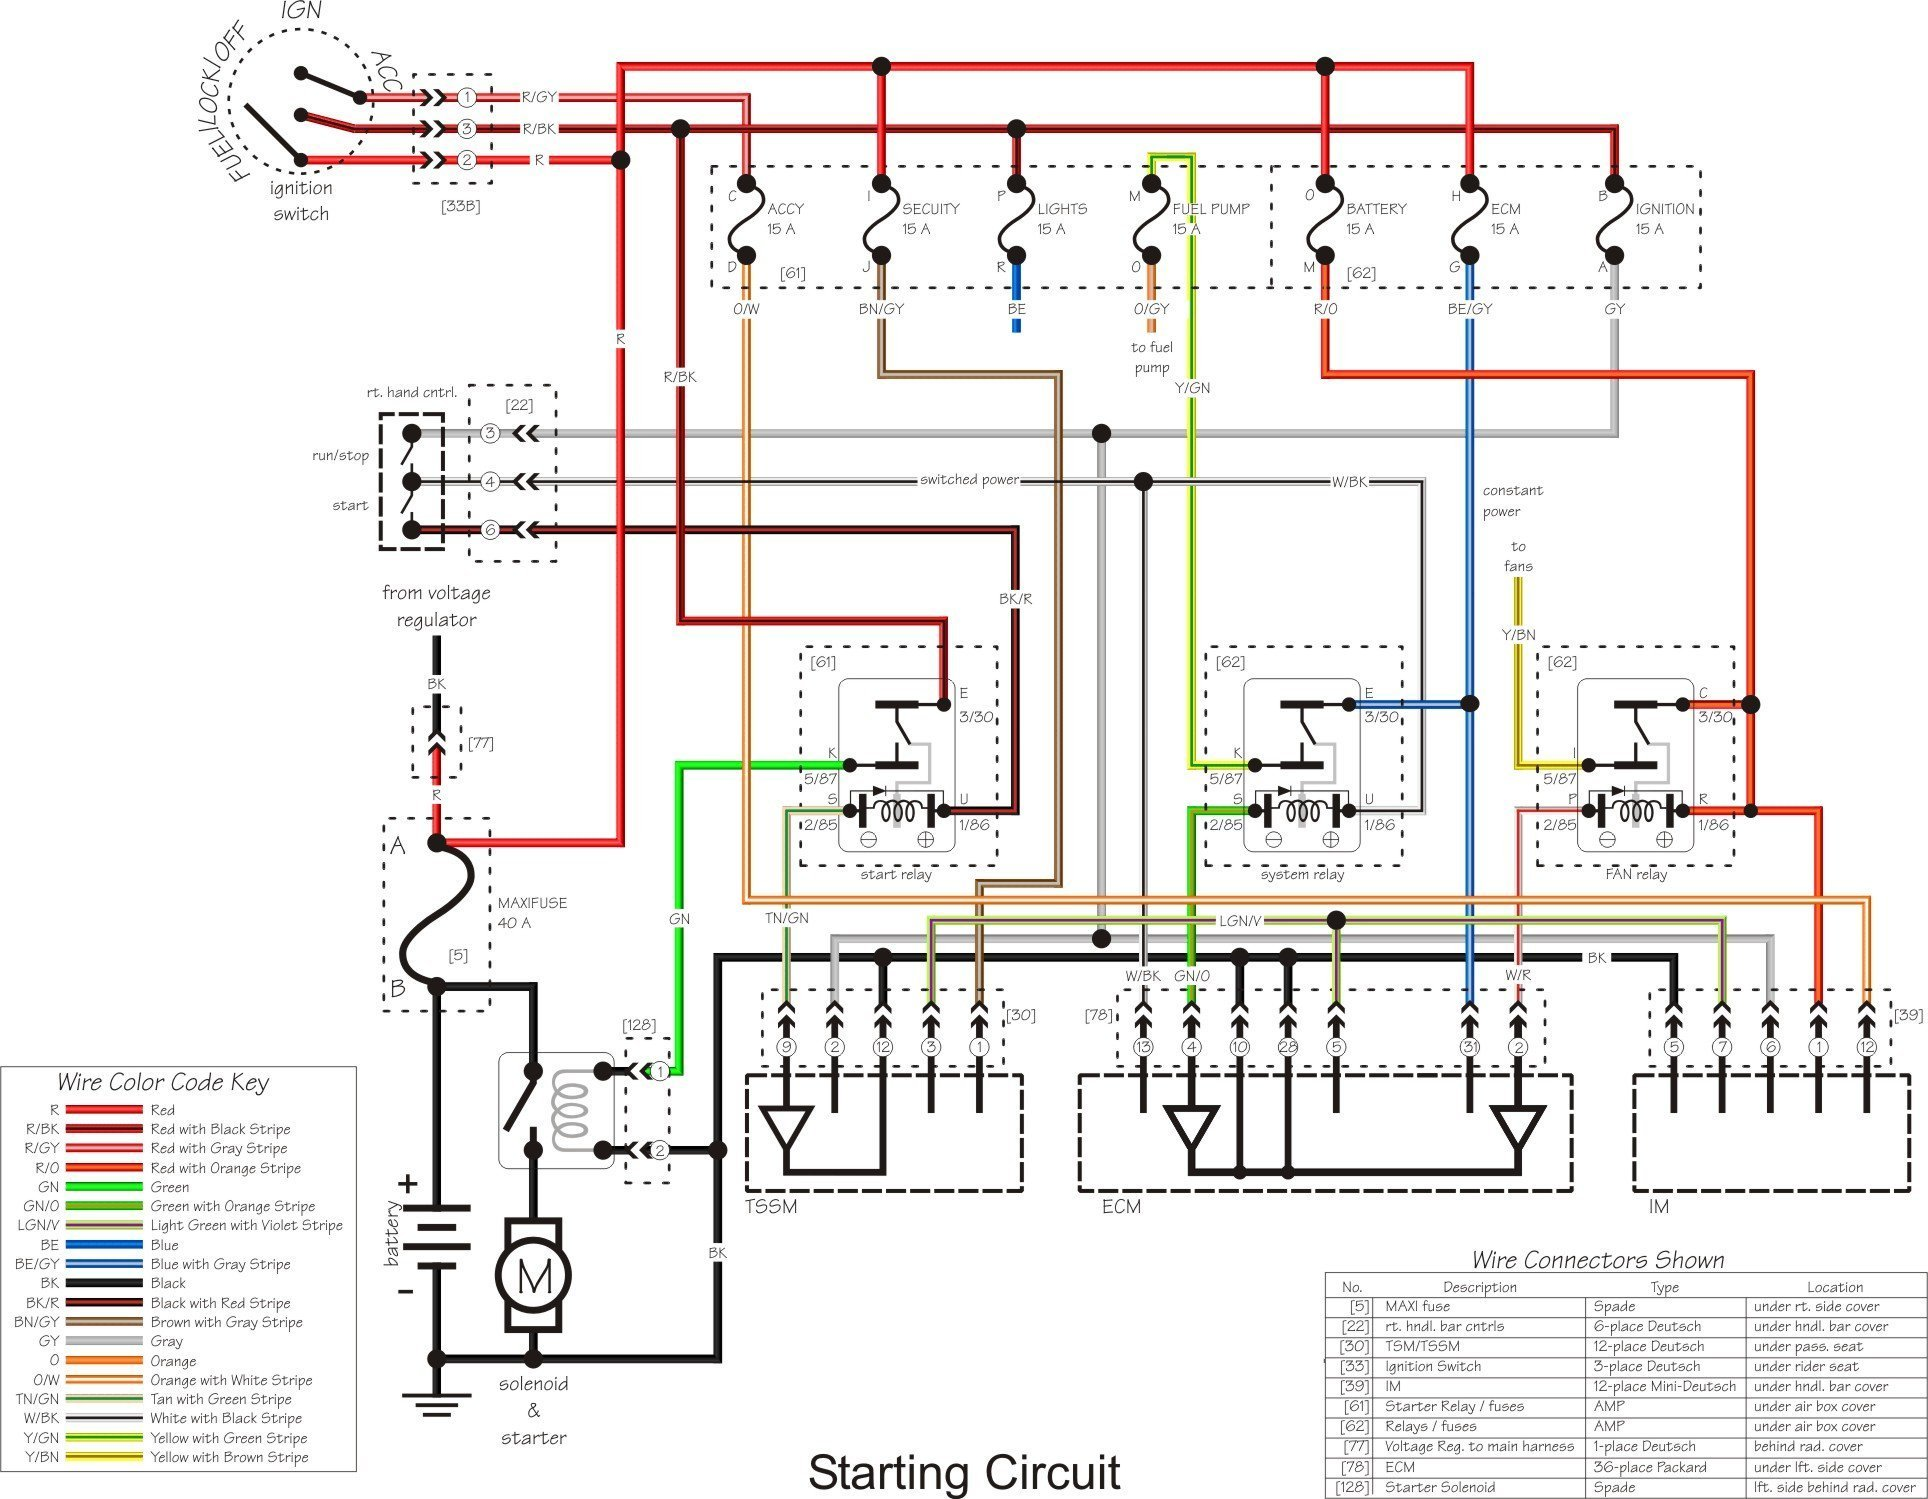 ignition wiring diagram - 1130cc: the #1 harley davidson v-rod, Wiring diagram